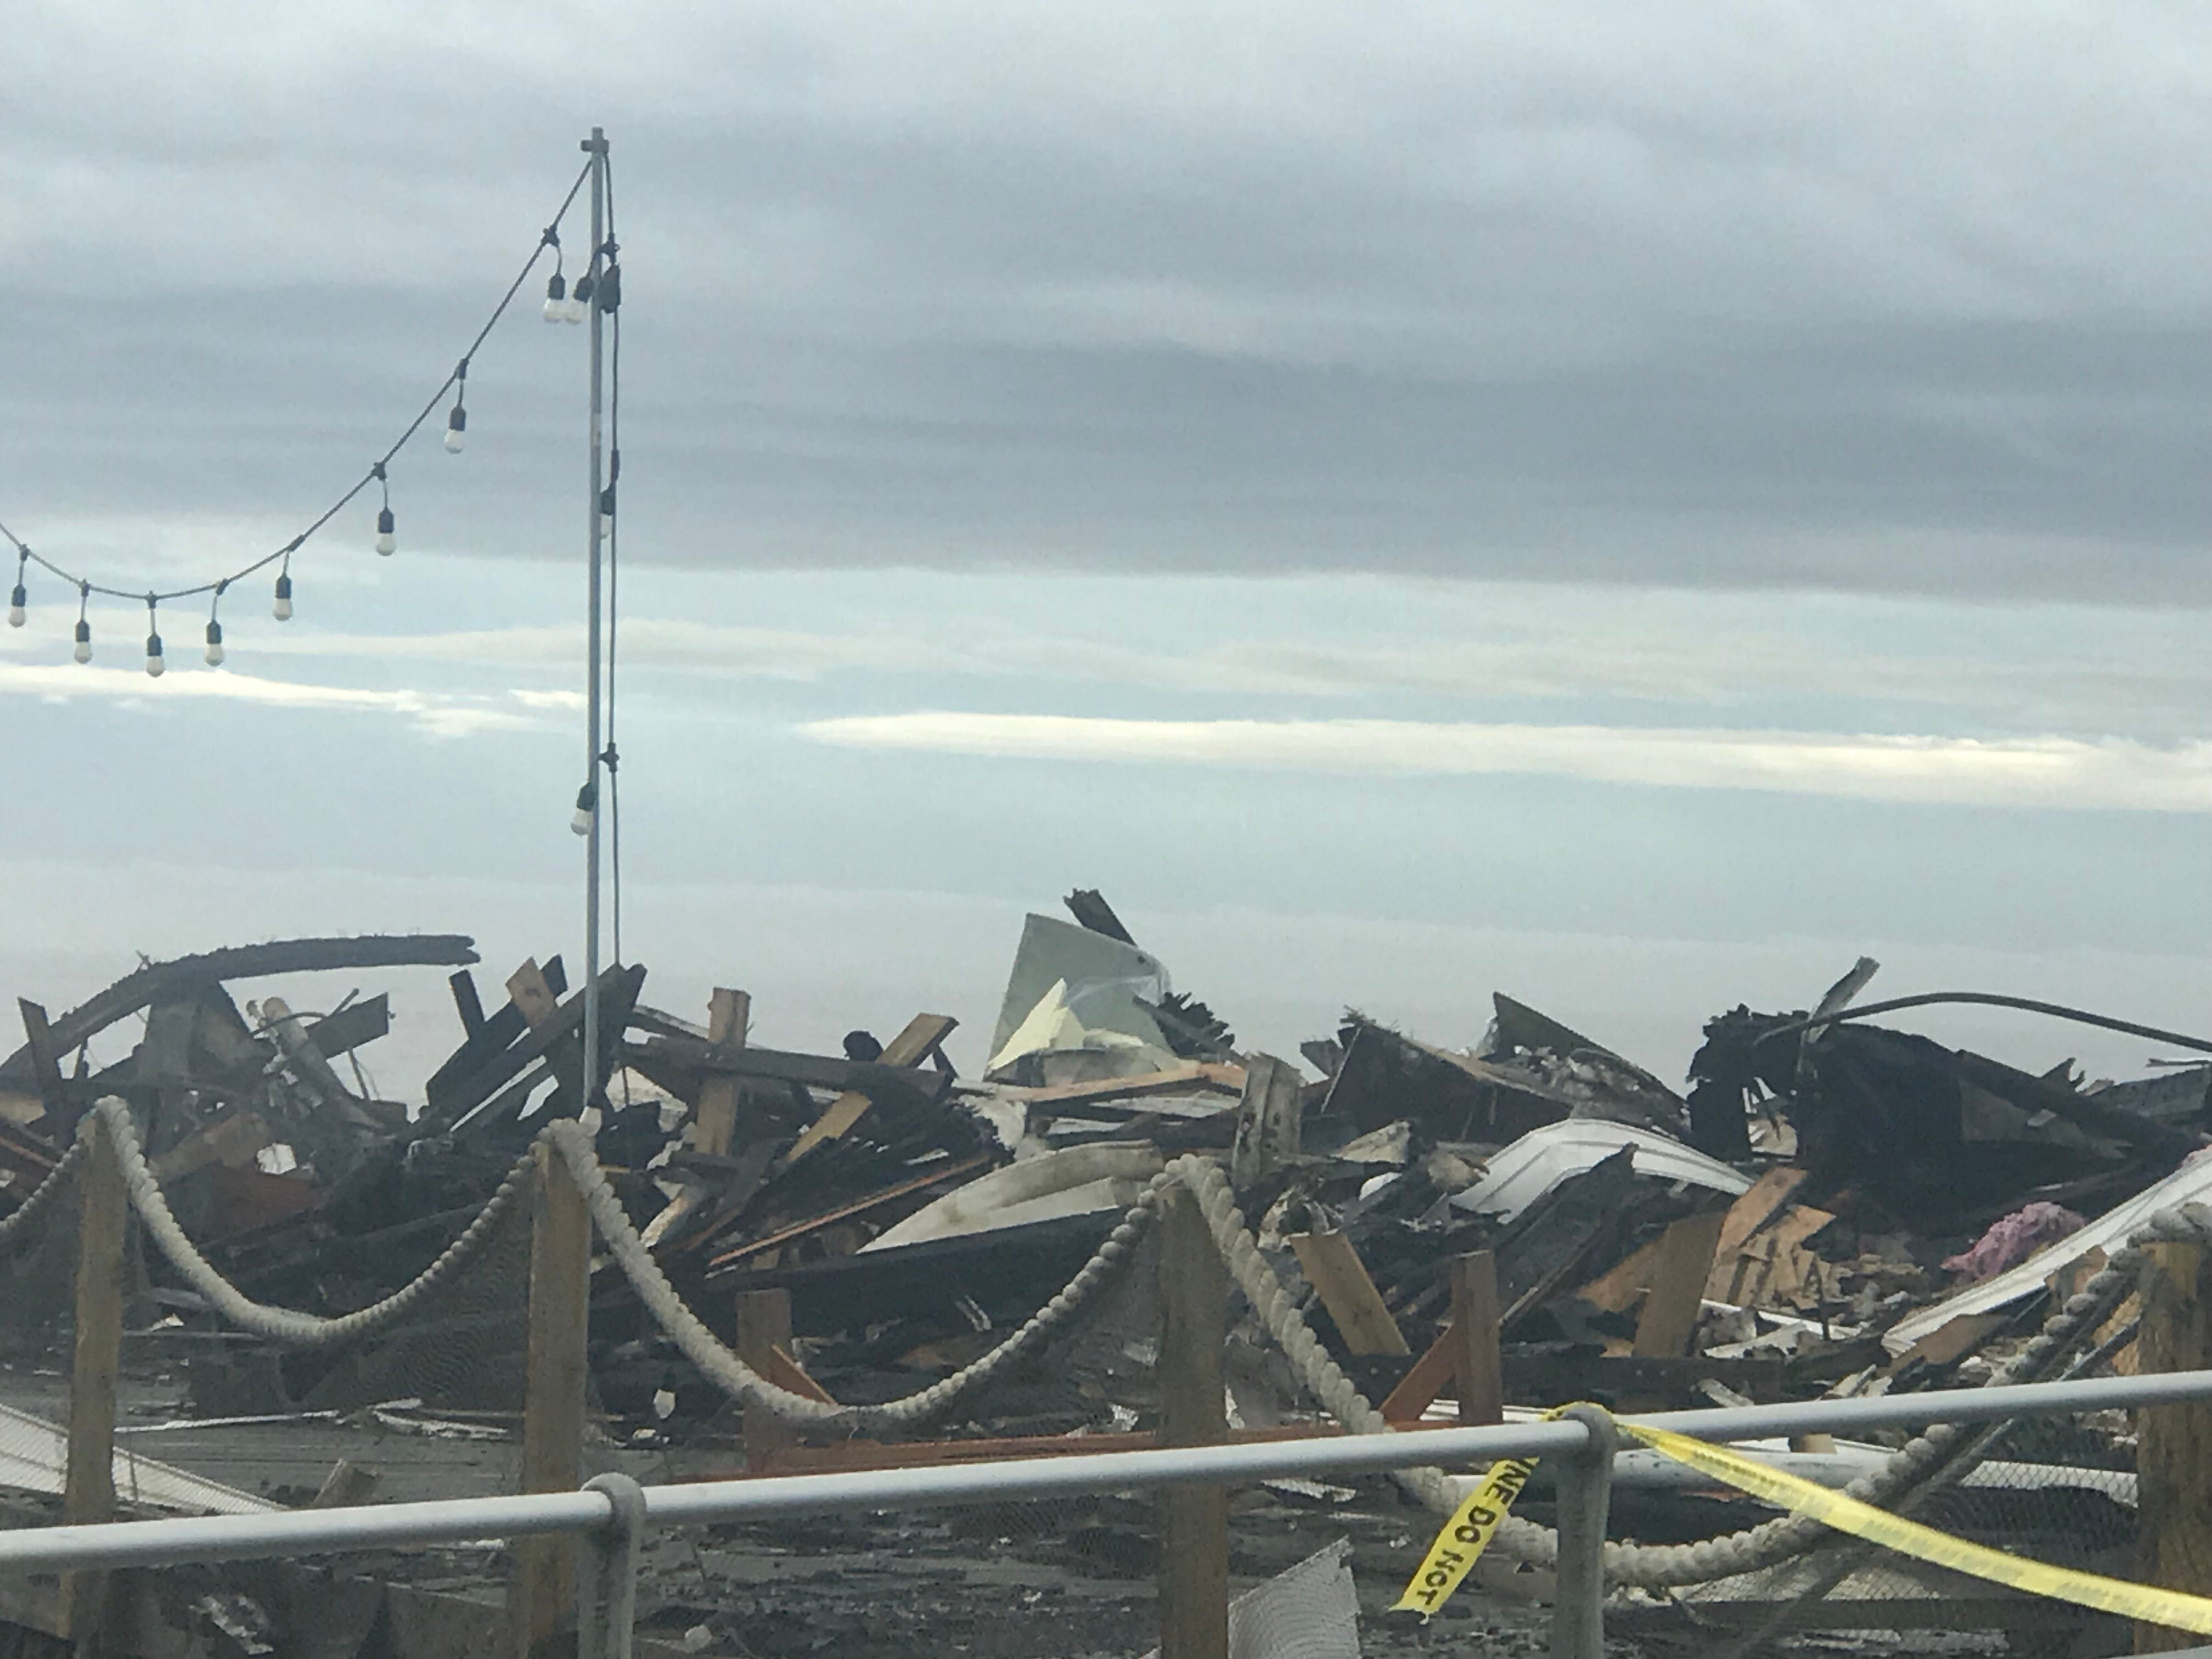 Aftermath of Dunes Boardwalk Cafe fire on the north end of the Ocean Grove boardwalk.